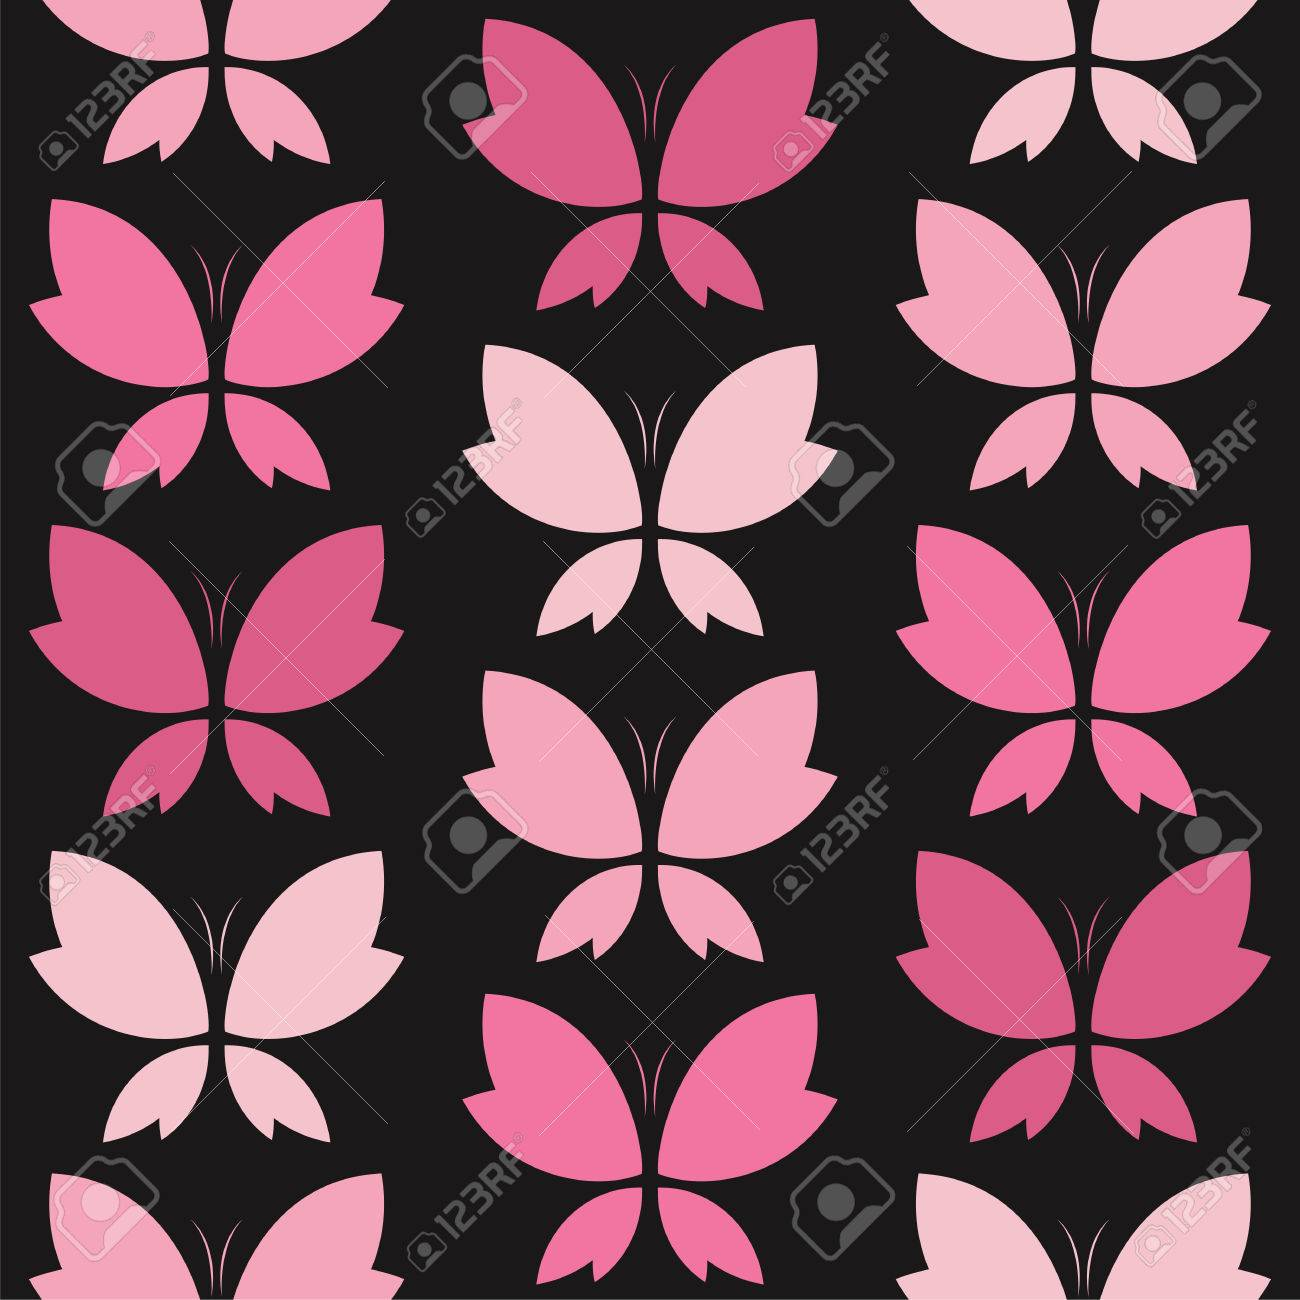 Vector Seamless Pattern With Pink Butterfly On Black Background Royalty Free Cliparts Vectors And Stock Illustration Image 49897317